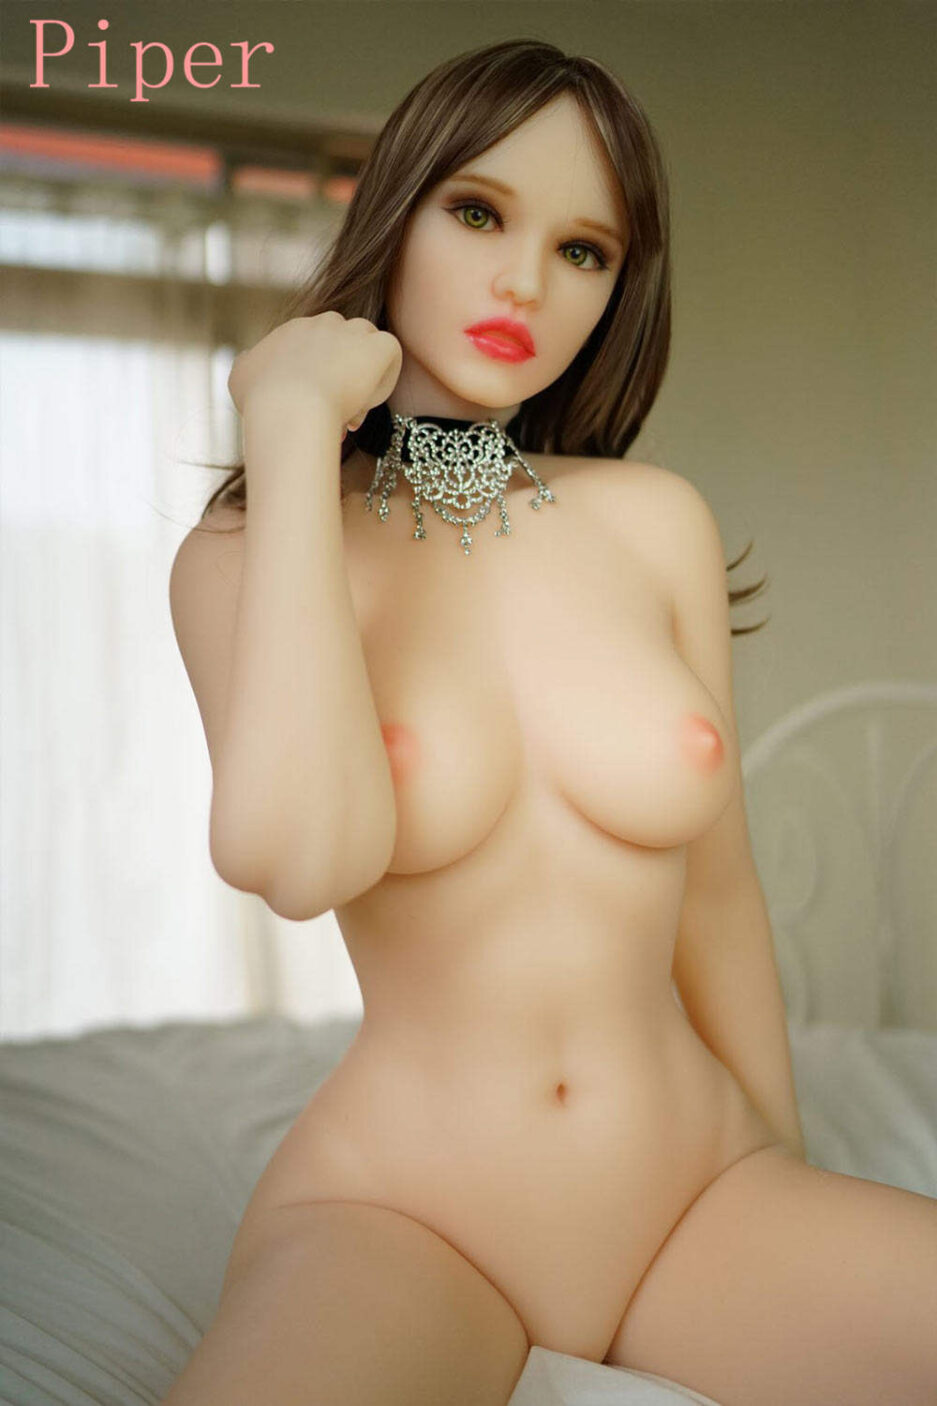 Sex doll with hand touching hair